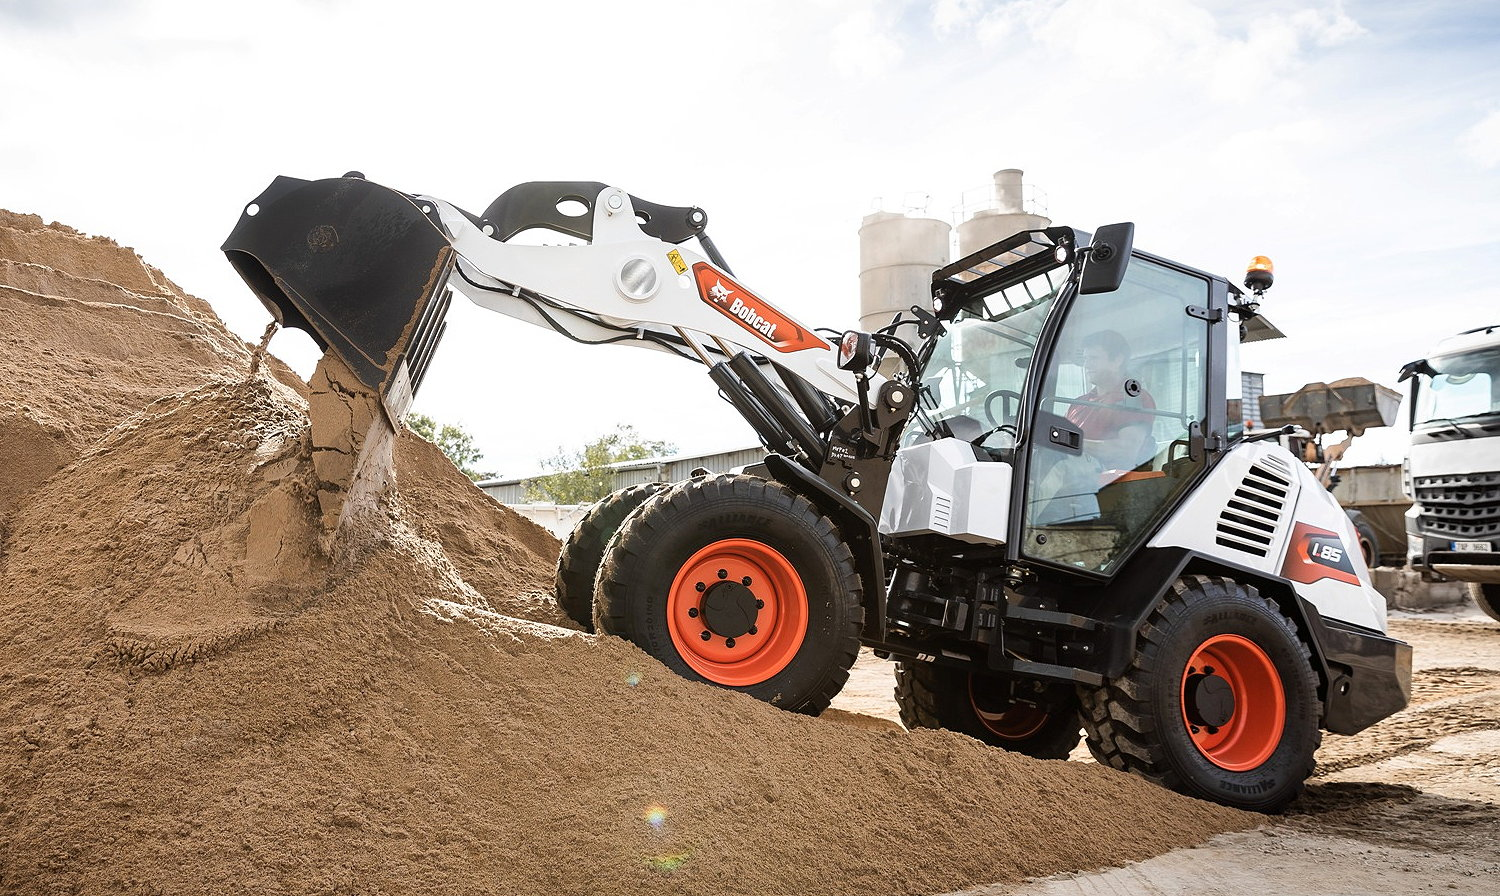 The standard bucket on the Bobcat L85 has a capacity of 0.8 cubic metres